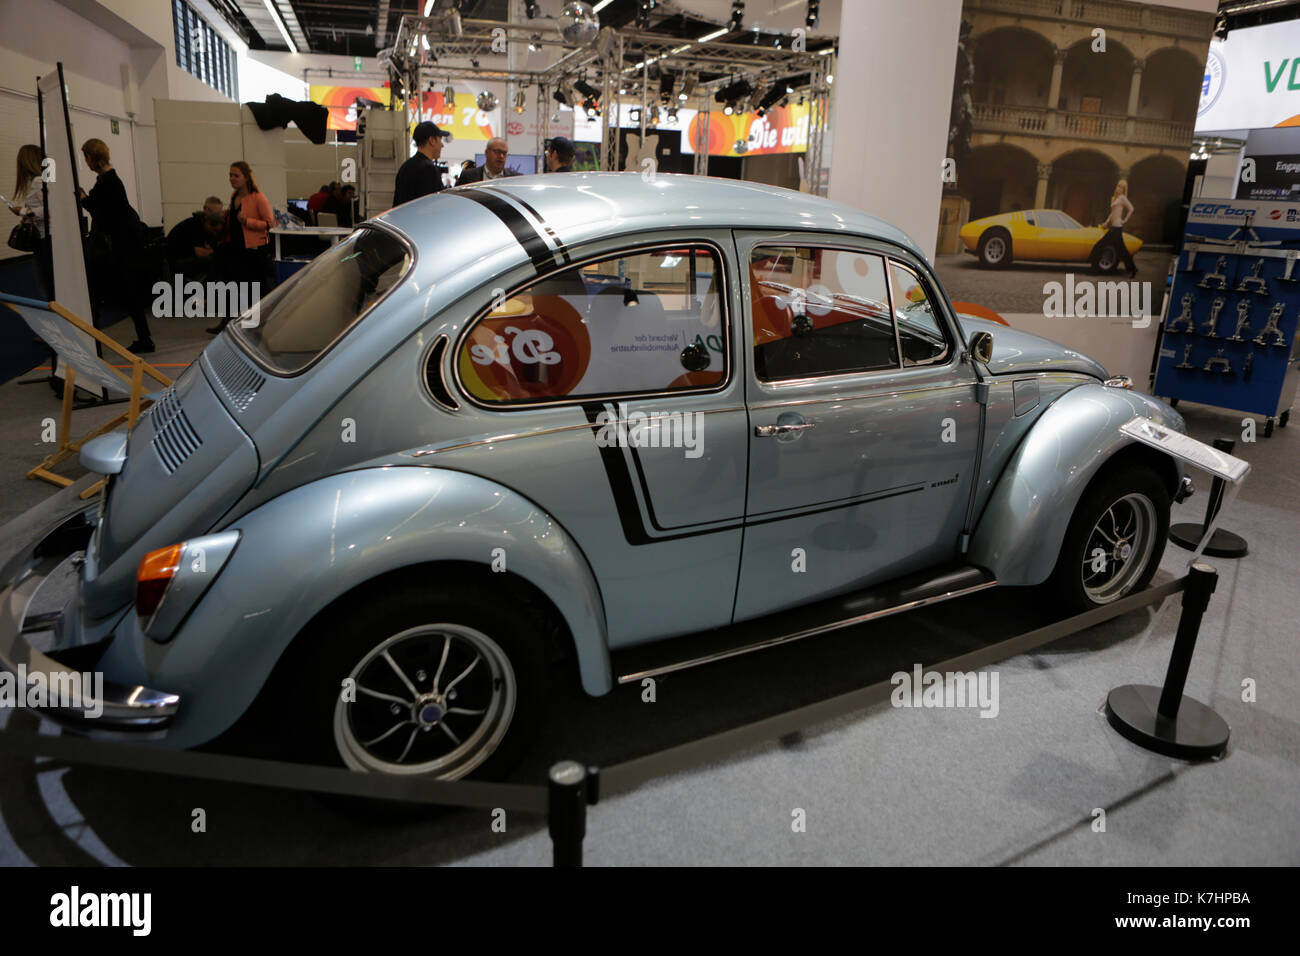 "Frankfurt, Germany. 15th September 2017. A 1972 Volkswagen Kammer Weltmeister Käfer (Beetle) is presented in the special exhibition ""The Wild 70s"". The 67. Internationale Automobil-Ausstellung (IAA in Frankfurt is with over 1000 exhibitors one of the largest Motor Shows in the world. The show will open for the general public from the 16th until the 24th September. - Stock Image"